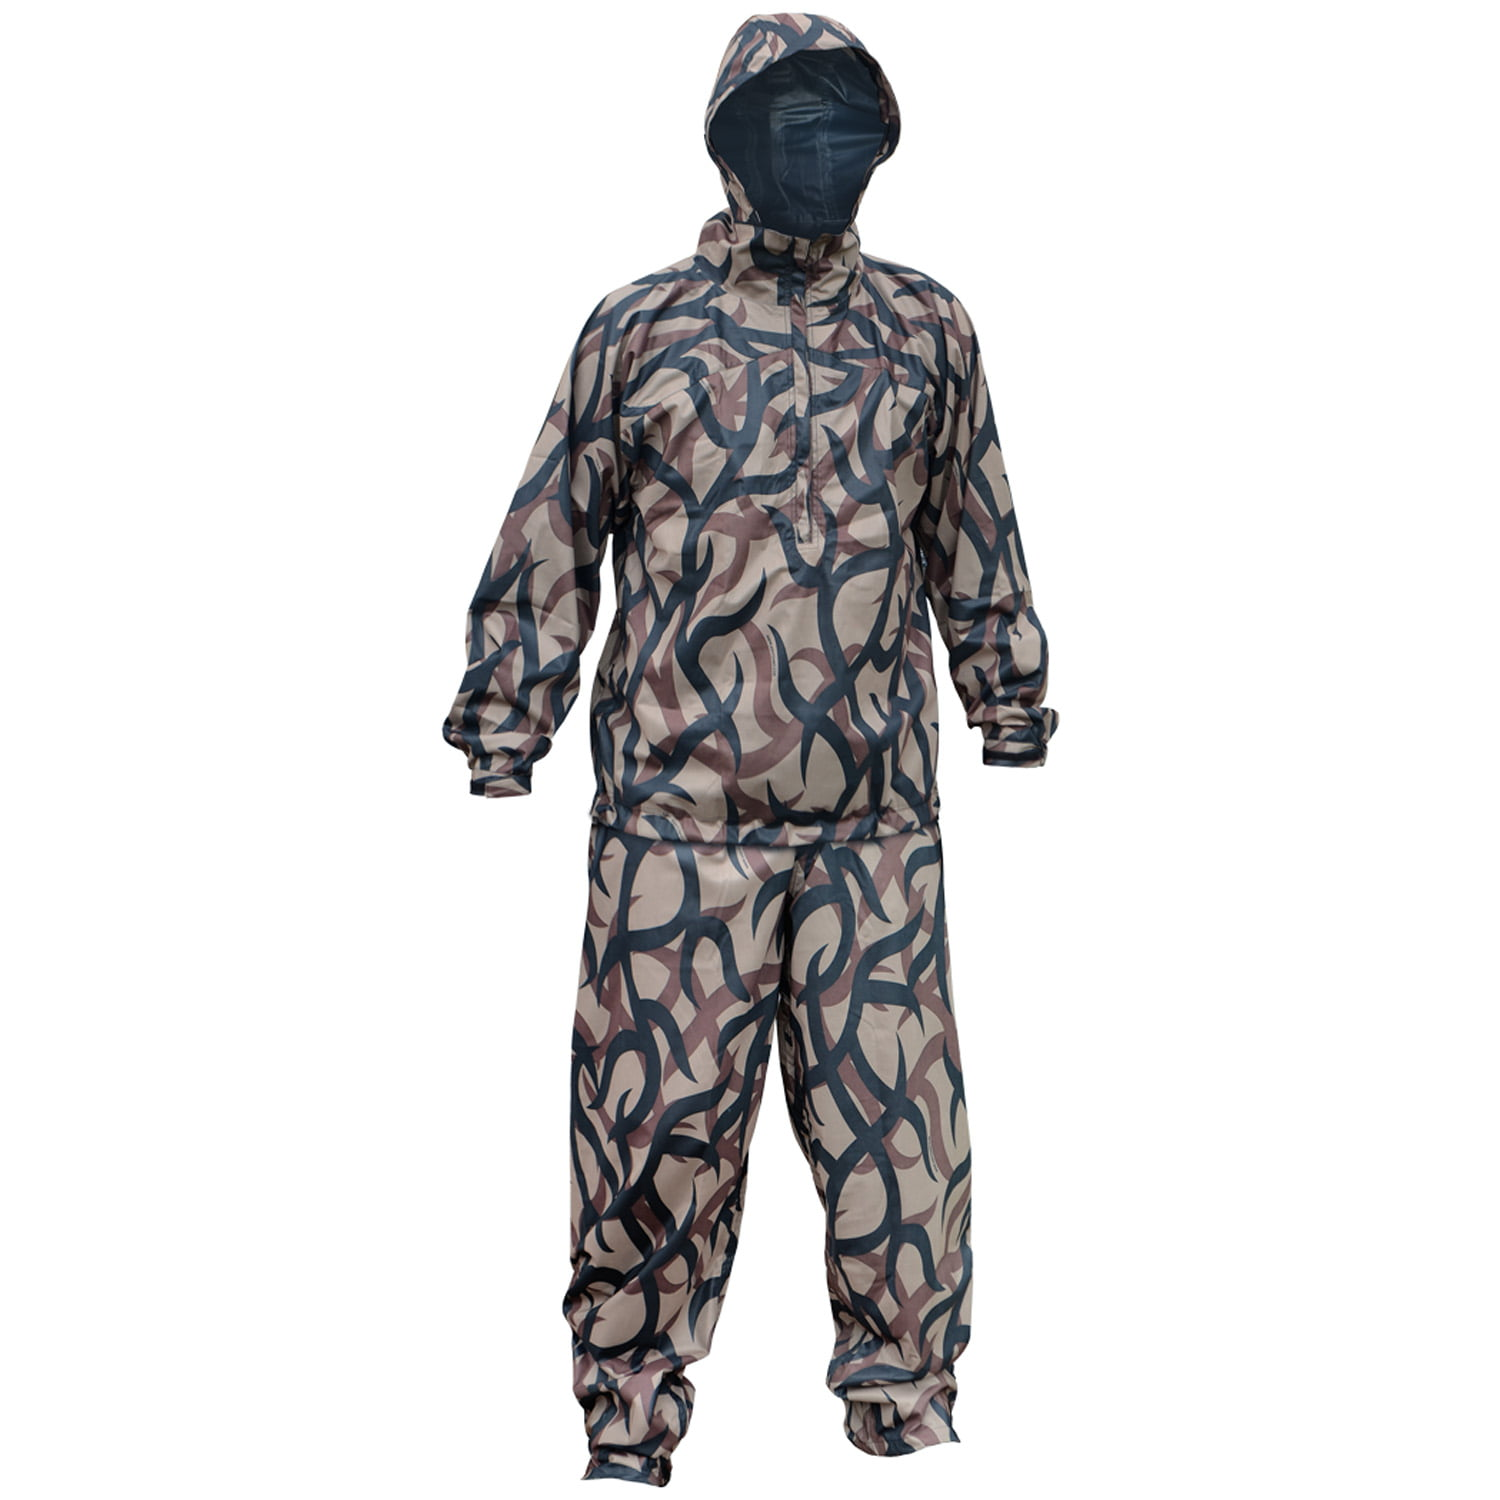 ASAT Packable Rain Suit, 2X-Large by ASAT